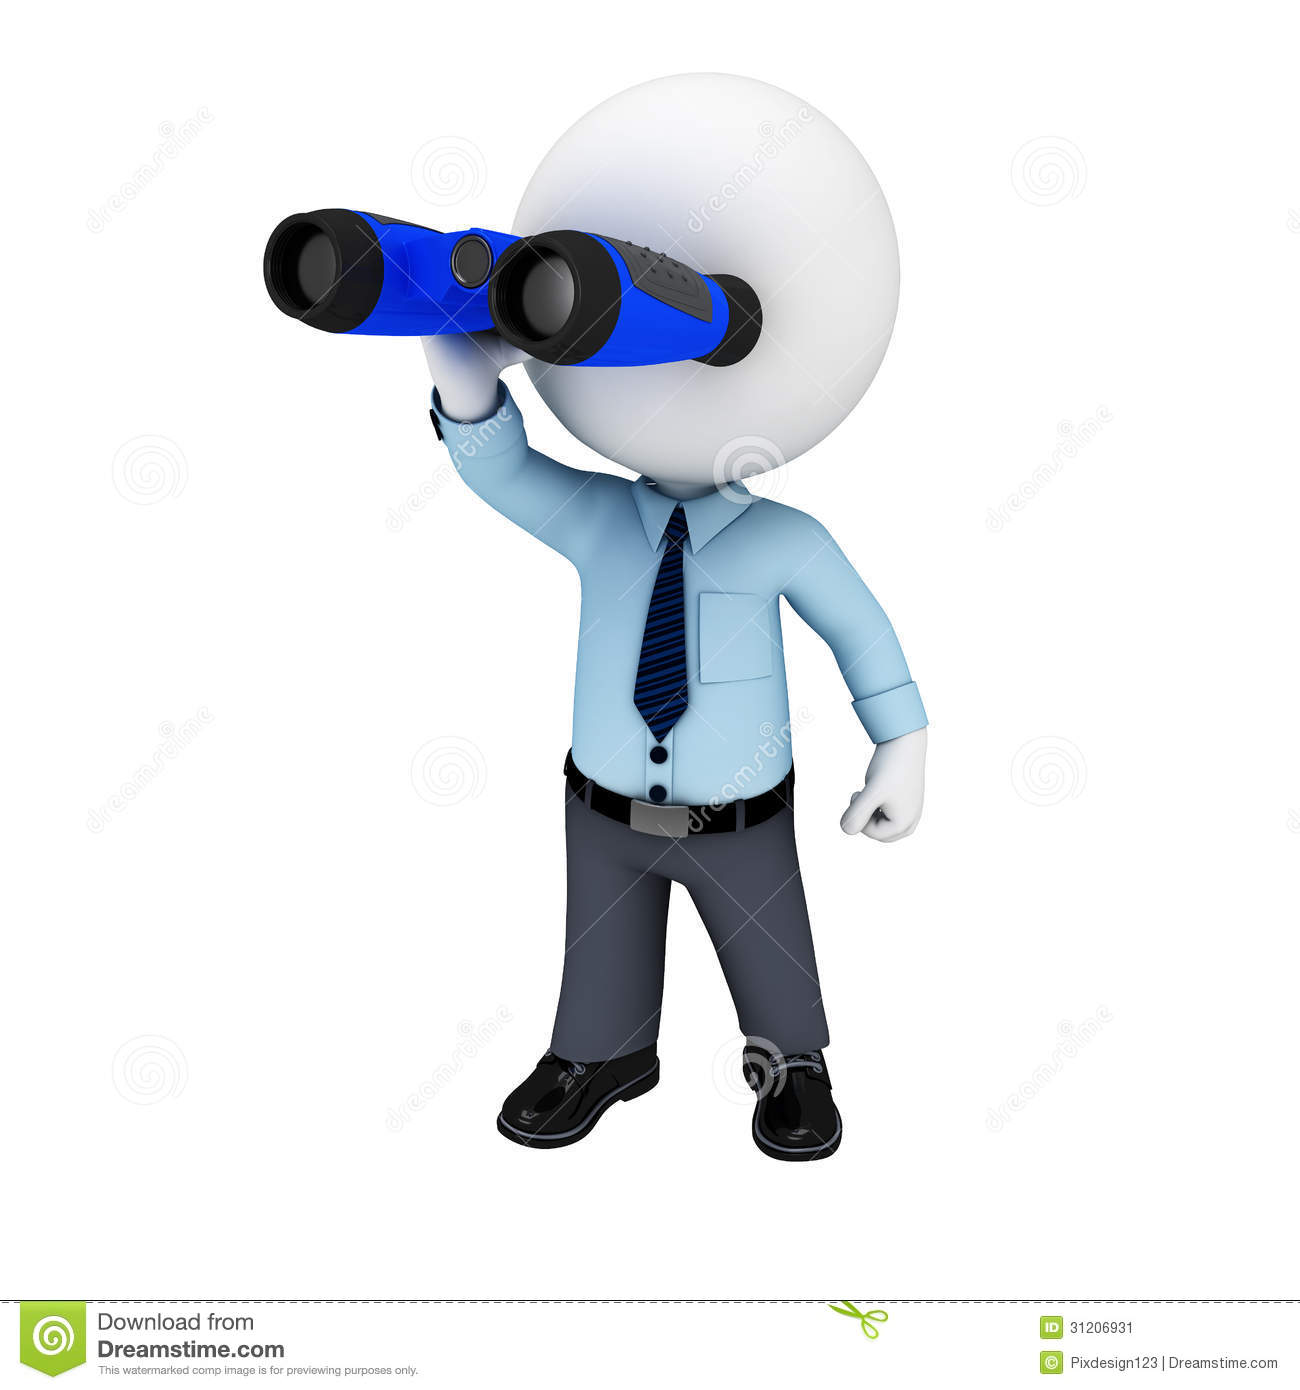 ... Image: 3d white people as service man with binoculars. Image: 31206931